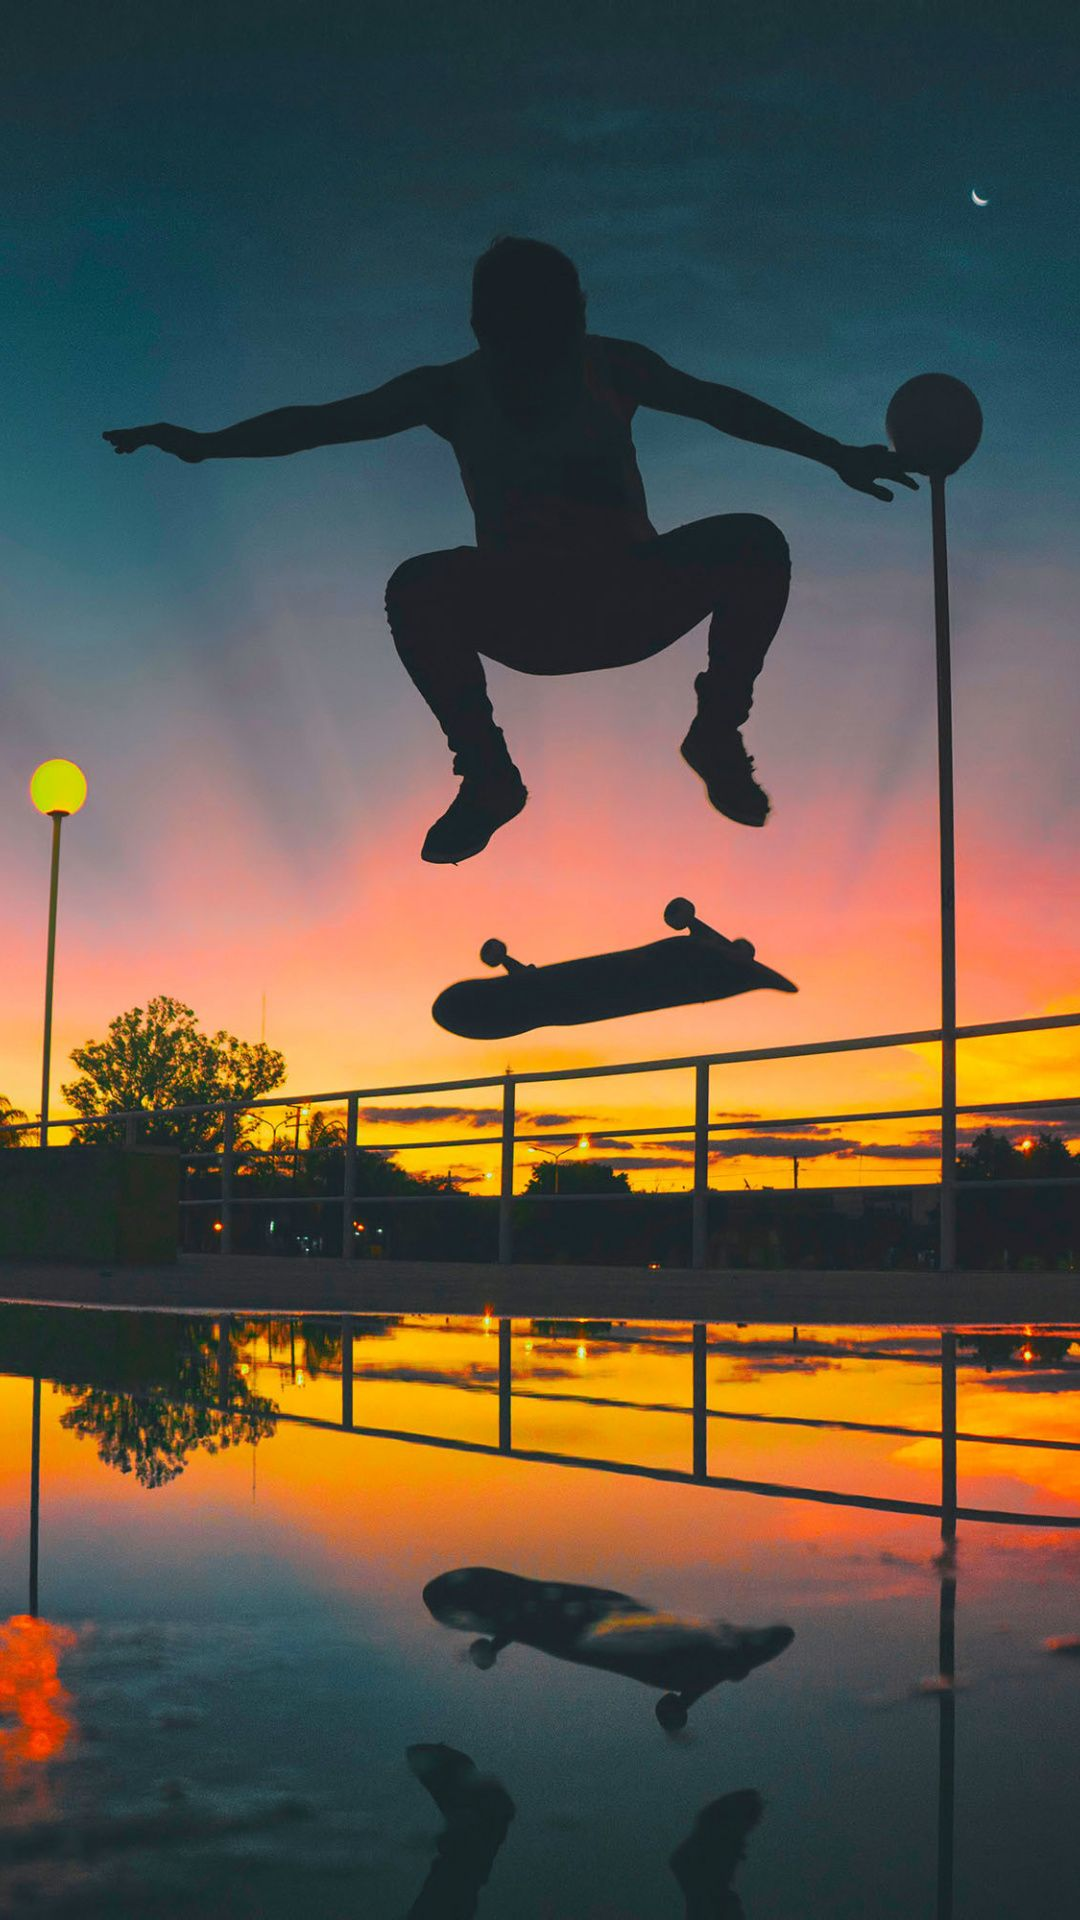 Man, skateboarding, sports, sunset, silhouette, 1080x1920